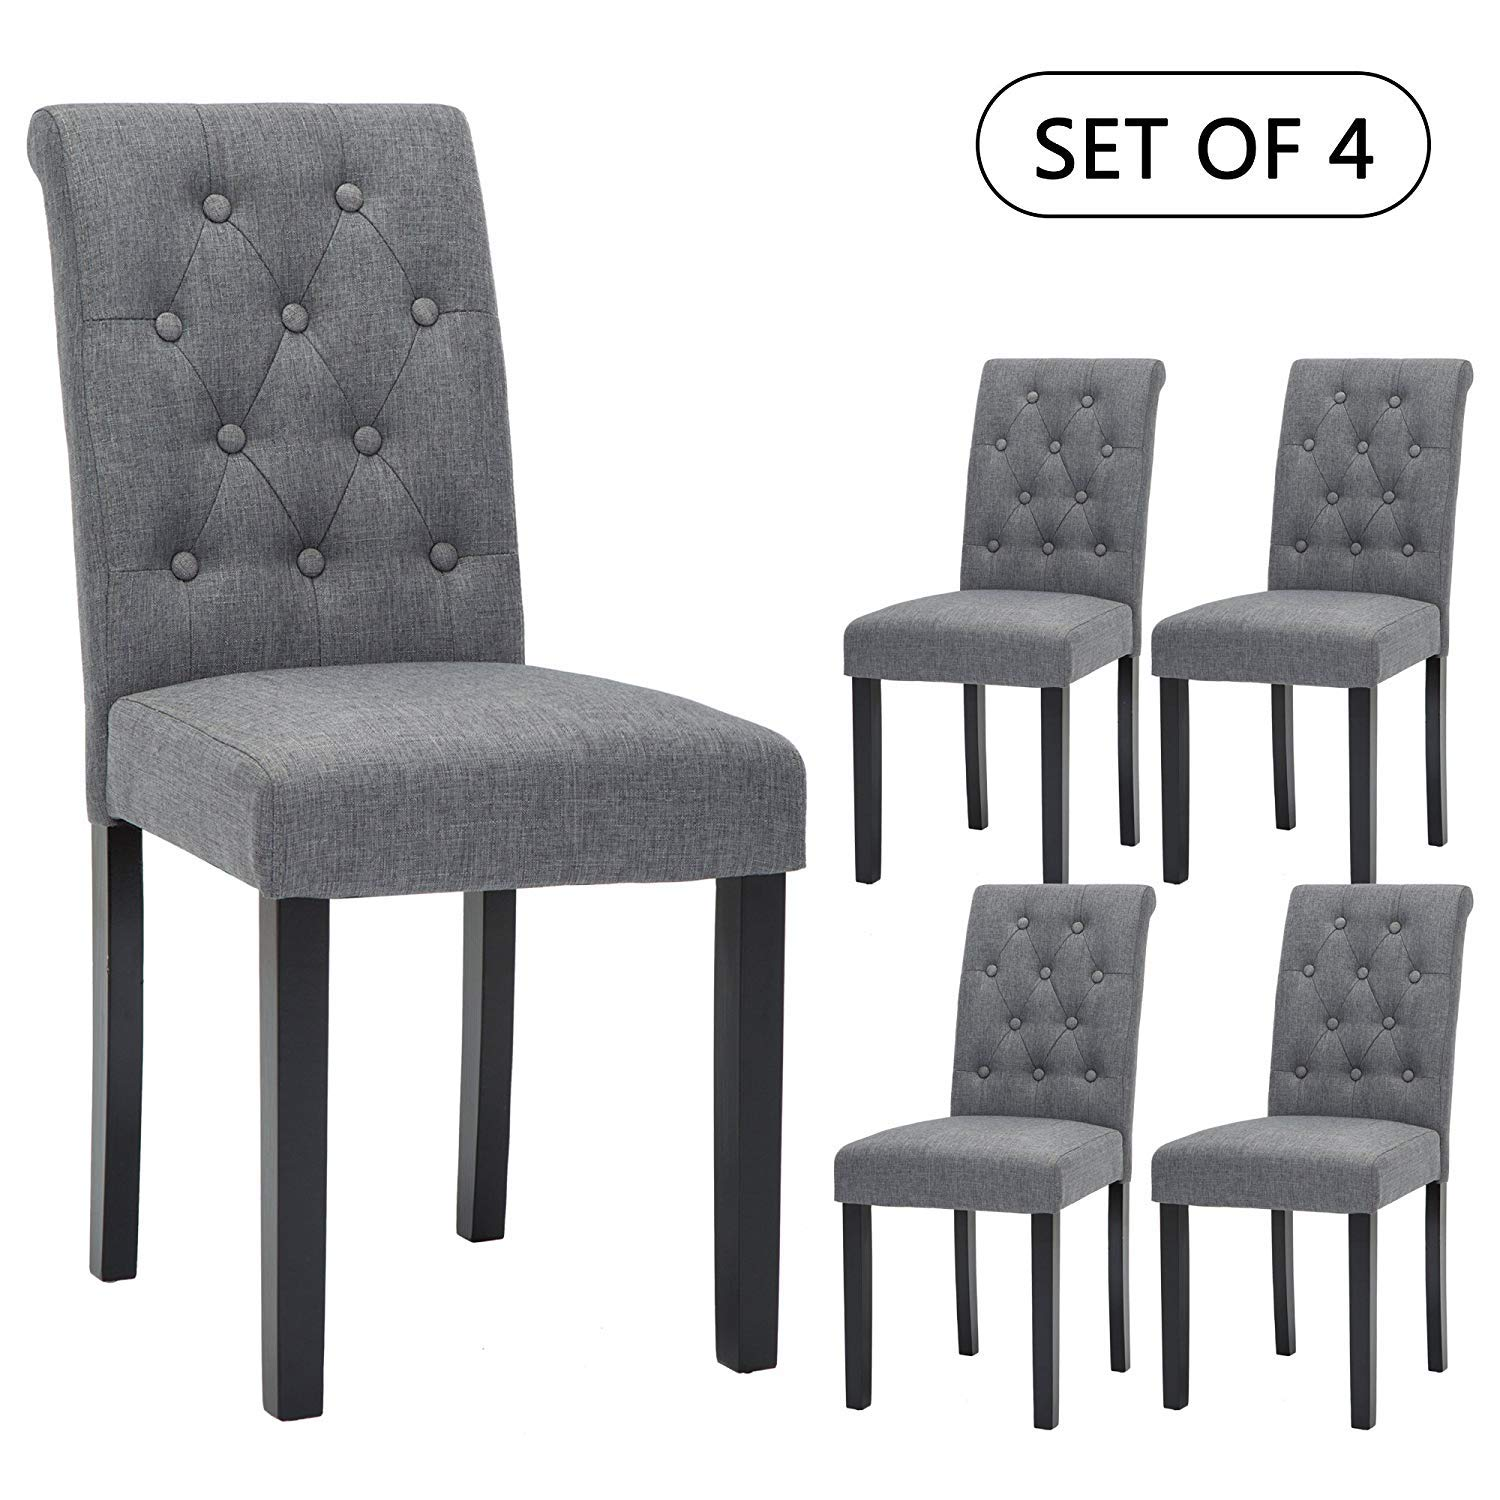 Set of 4 Upholstered Fabric Dining Chairs with Button-Tufted Details Gray